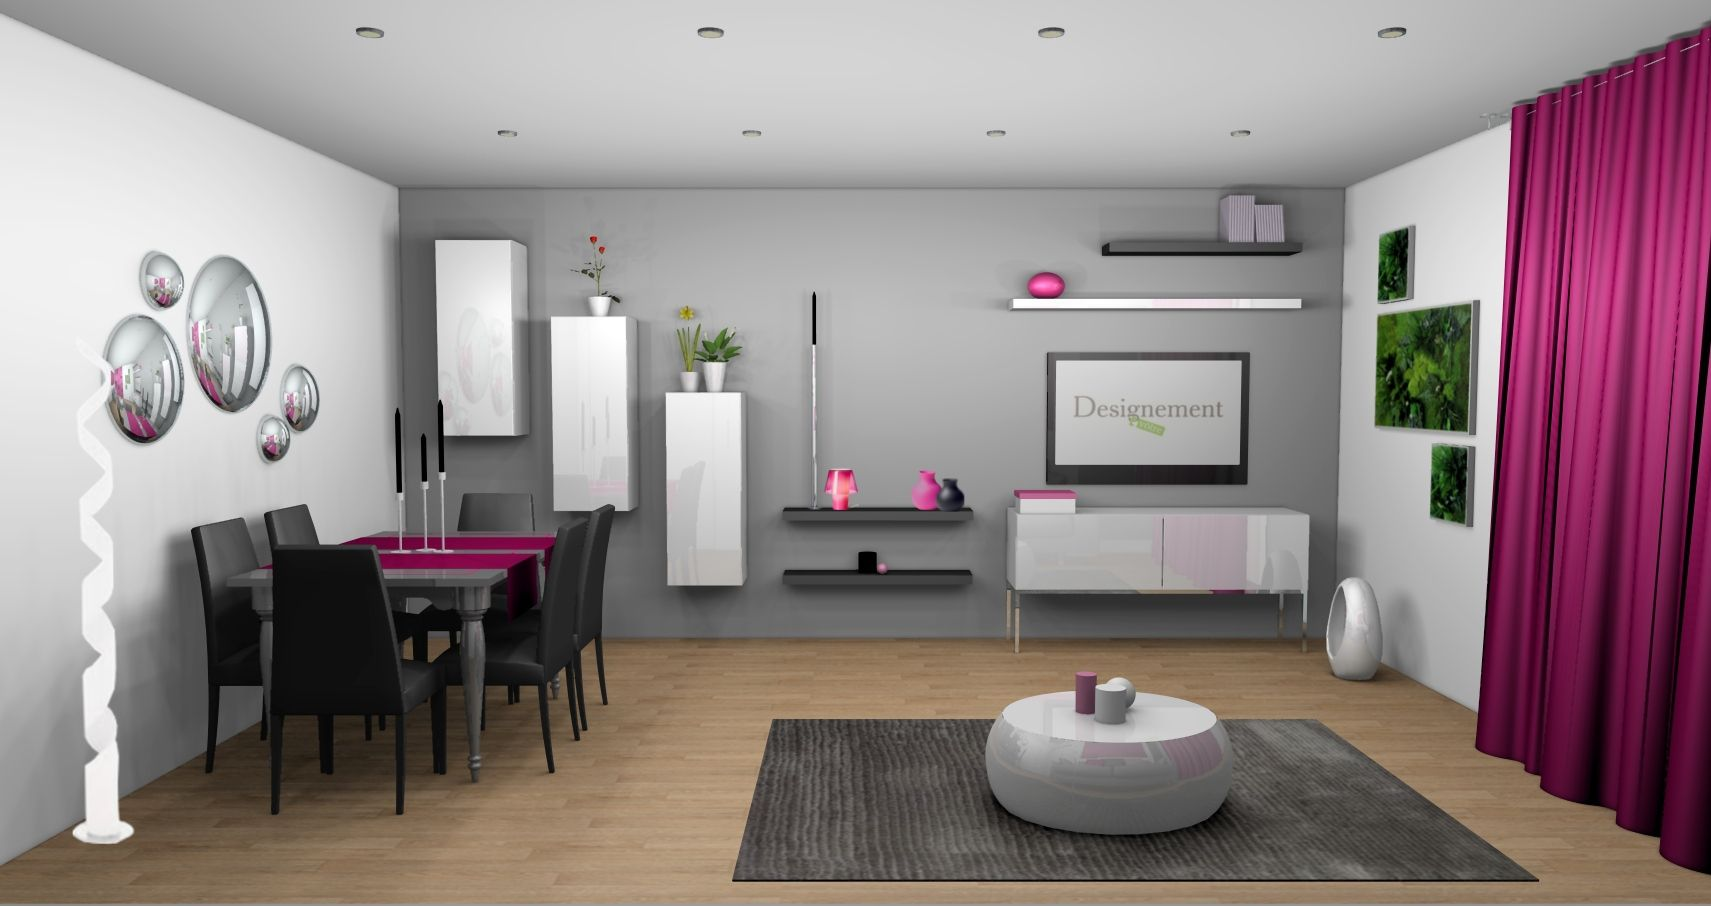 D co salon m r gris et blanc touche de couleur fushia living room pinter - Deco mur salon design ...